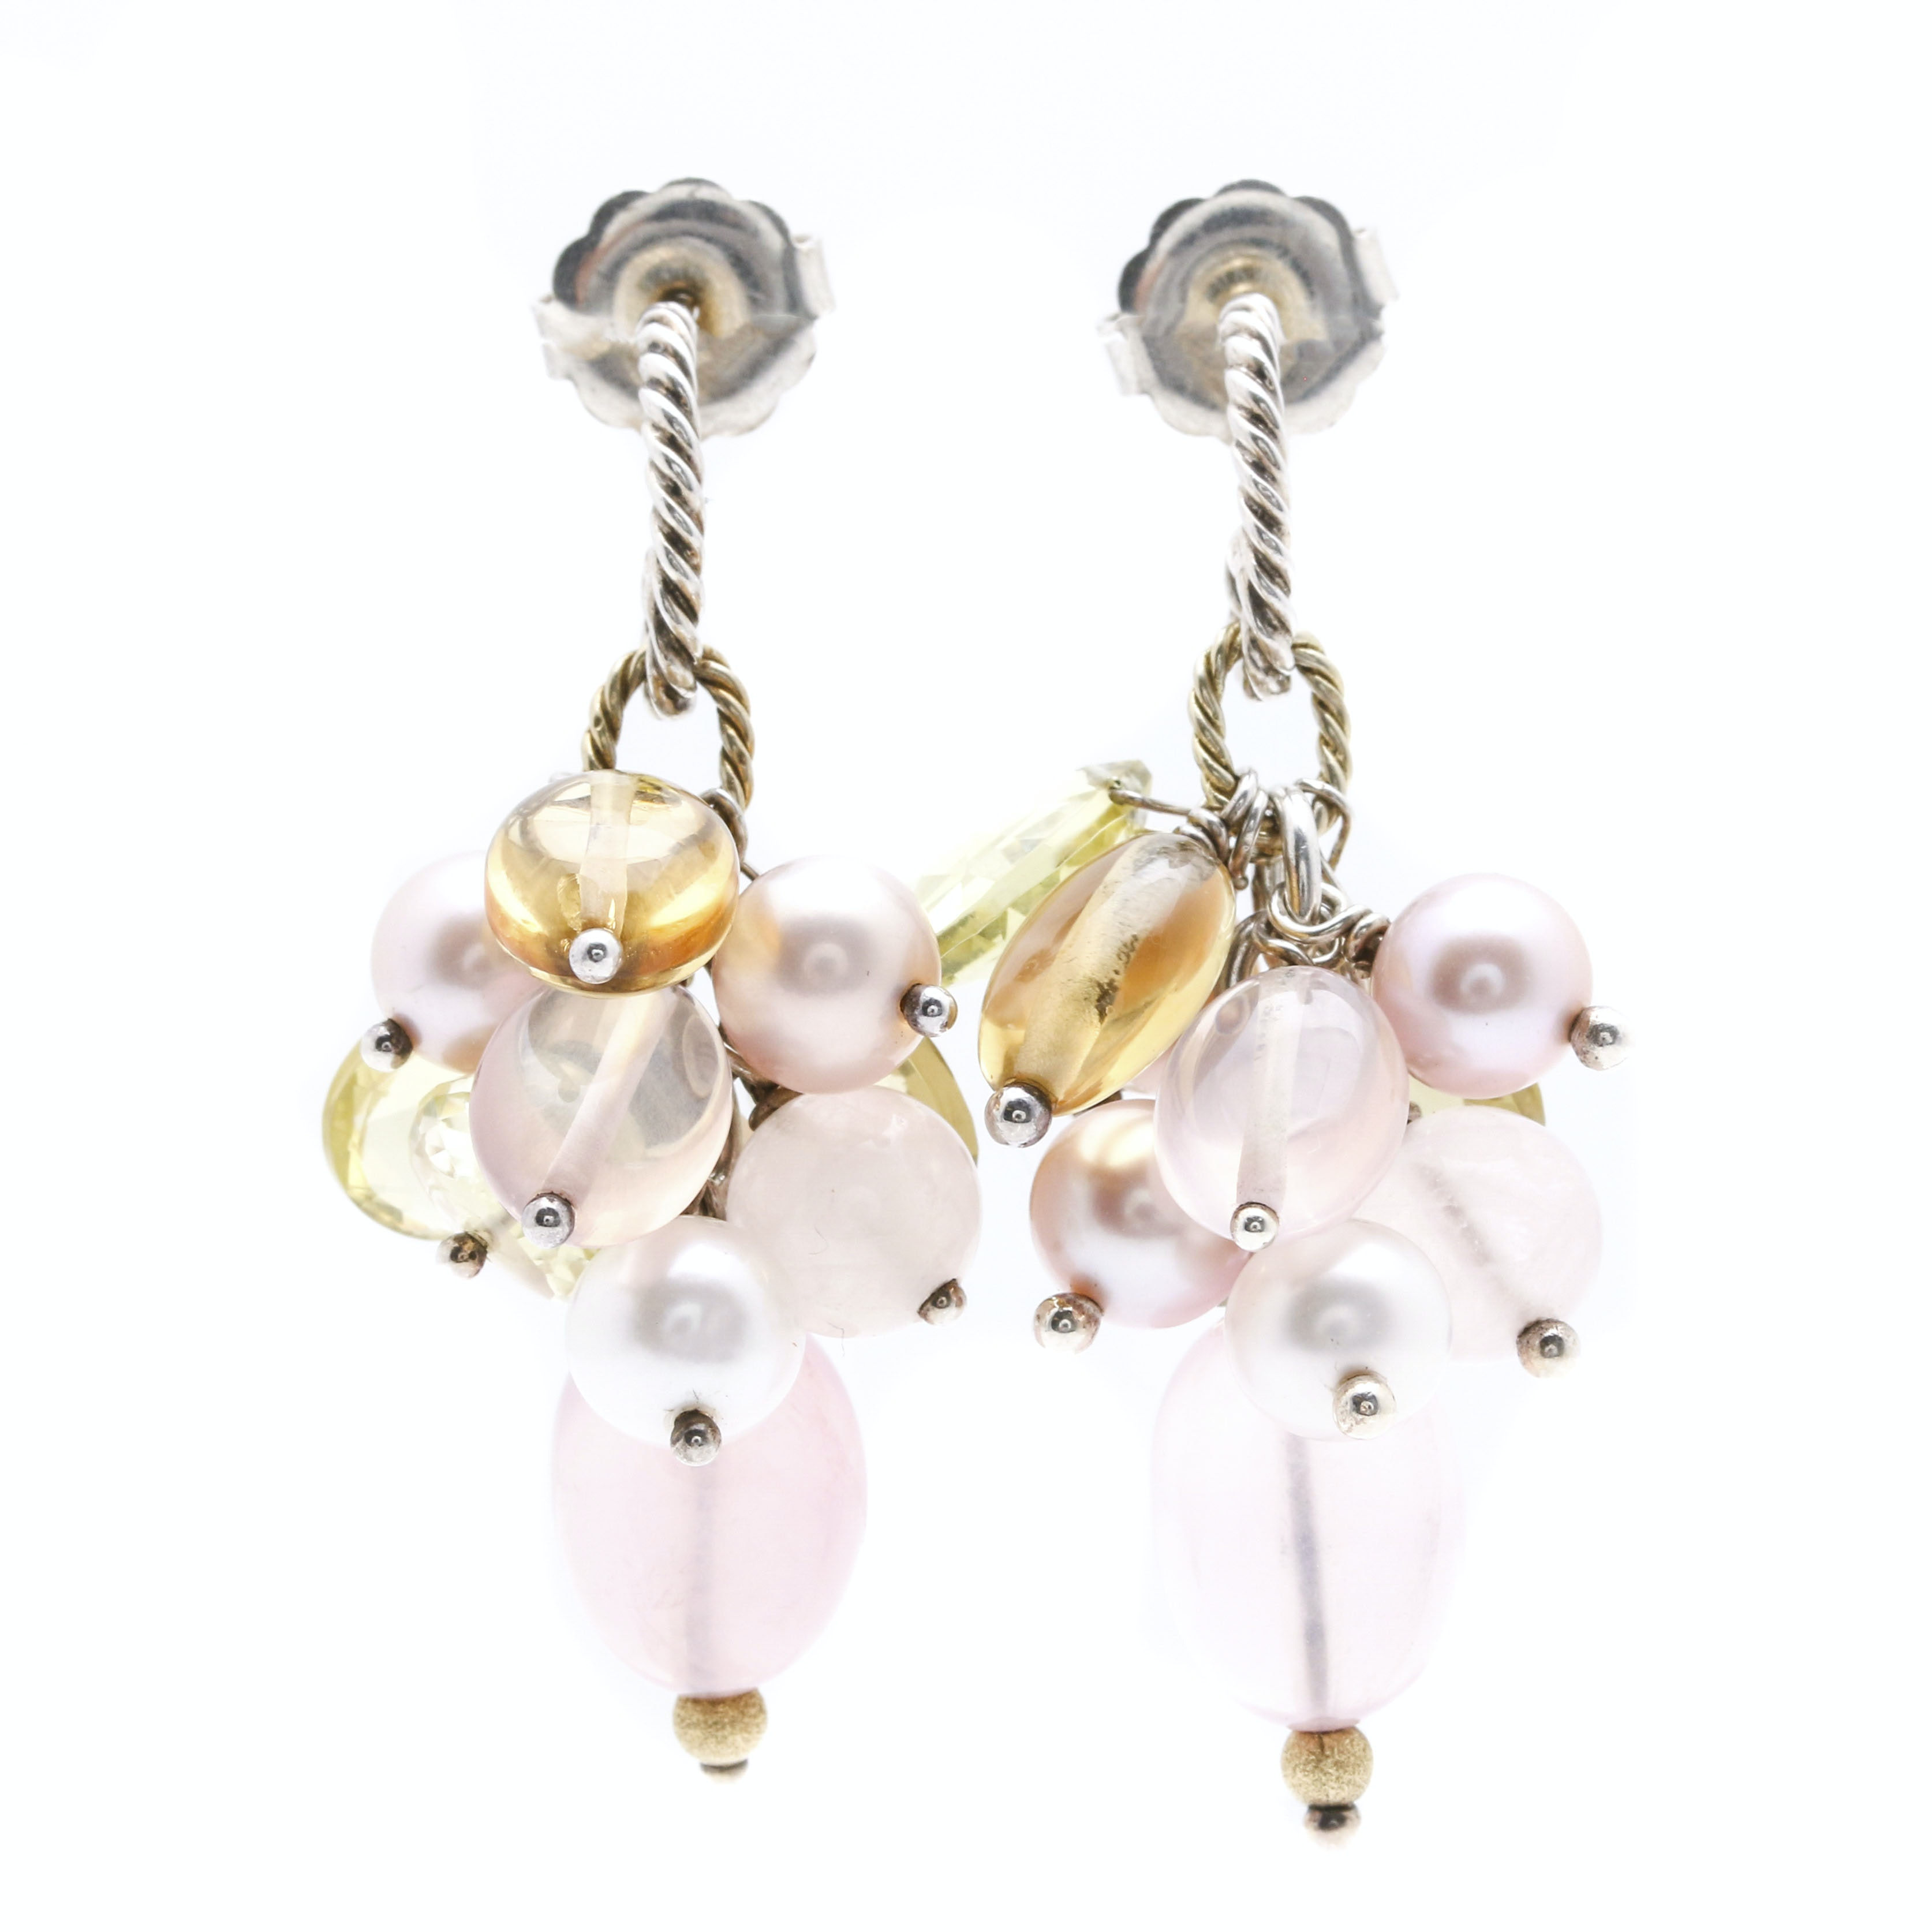 David Yurman Sterling Silver and 18K Yellow Gold Dangle Earrings Featuring Assorted Gemstones